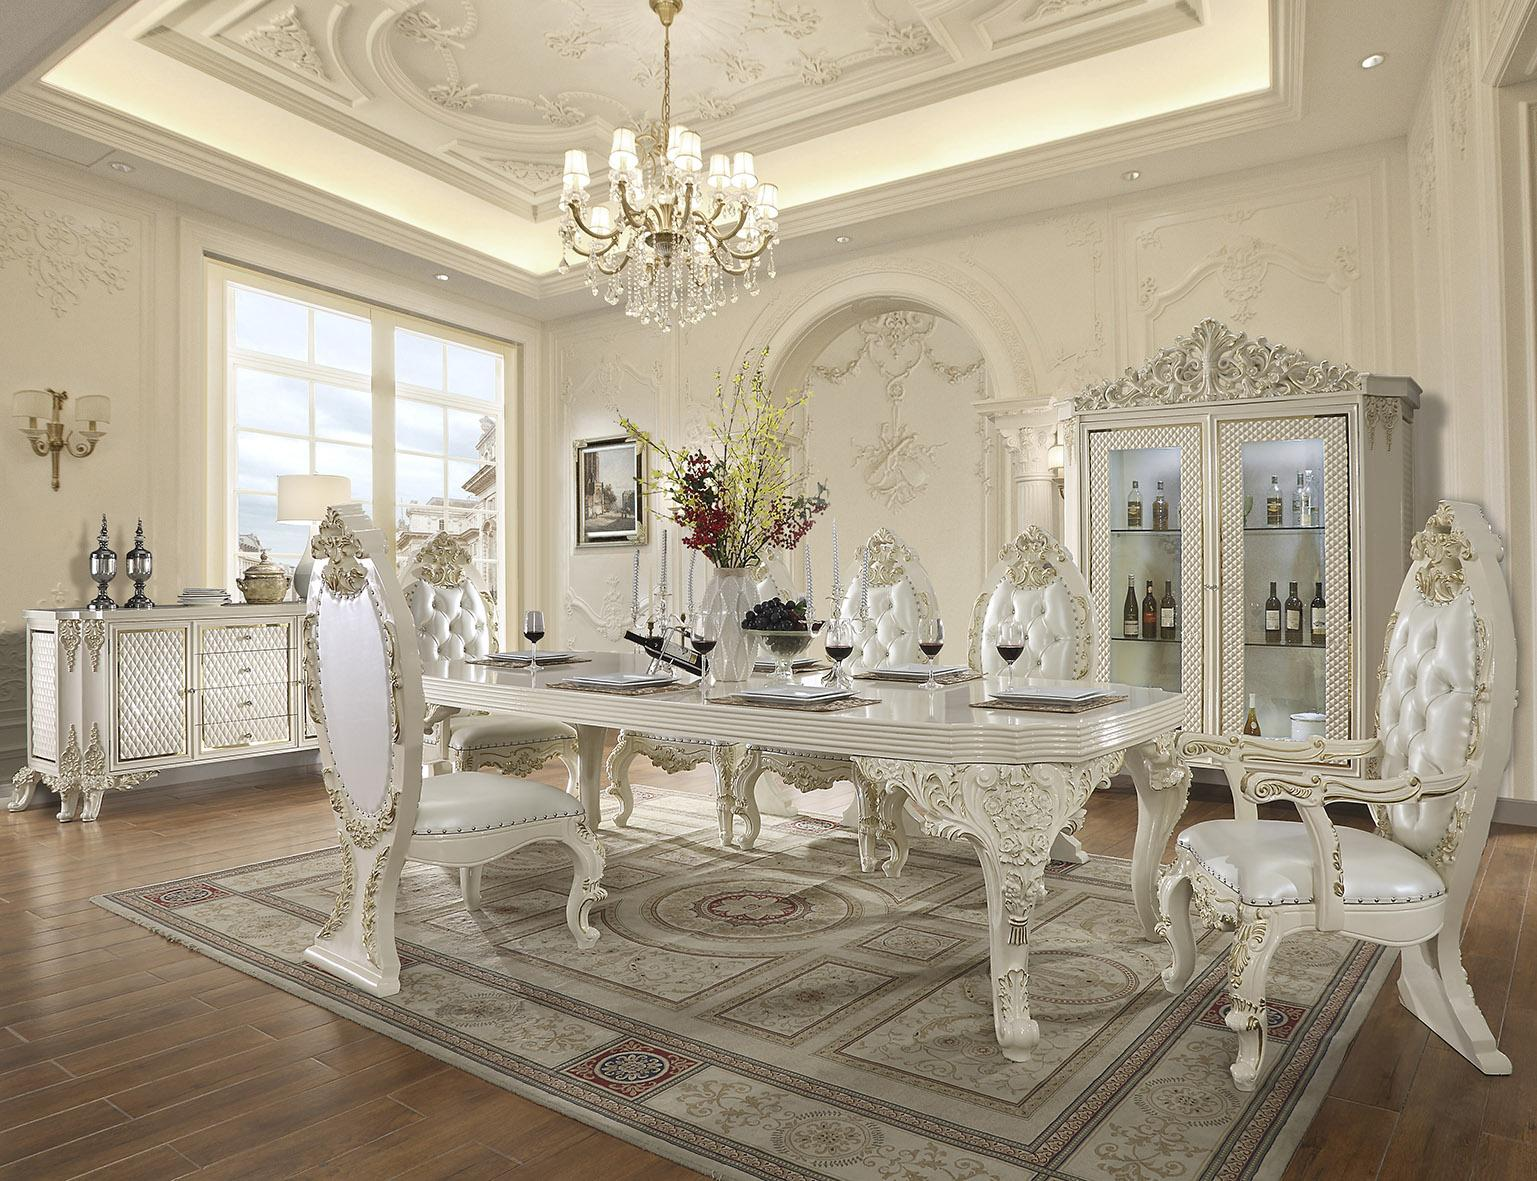 Traditional Gold, Antique White Leather and Wood Dining Table Set 9 pcs HD-8091 by Homey Design